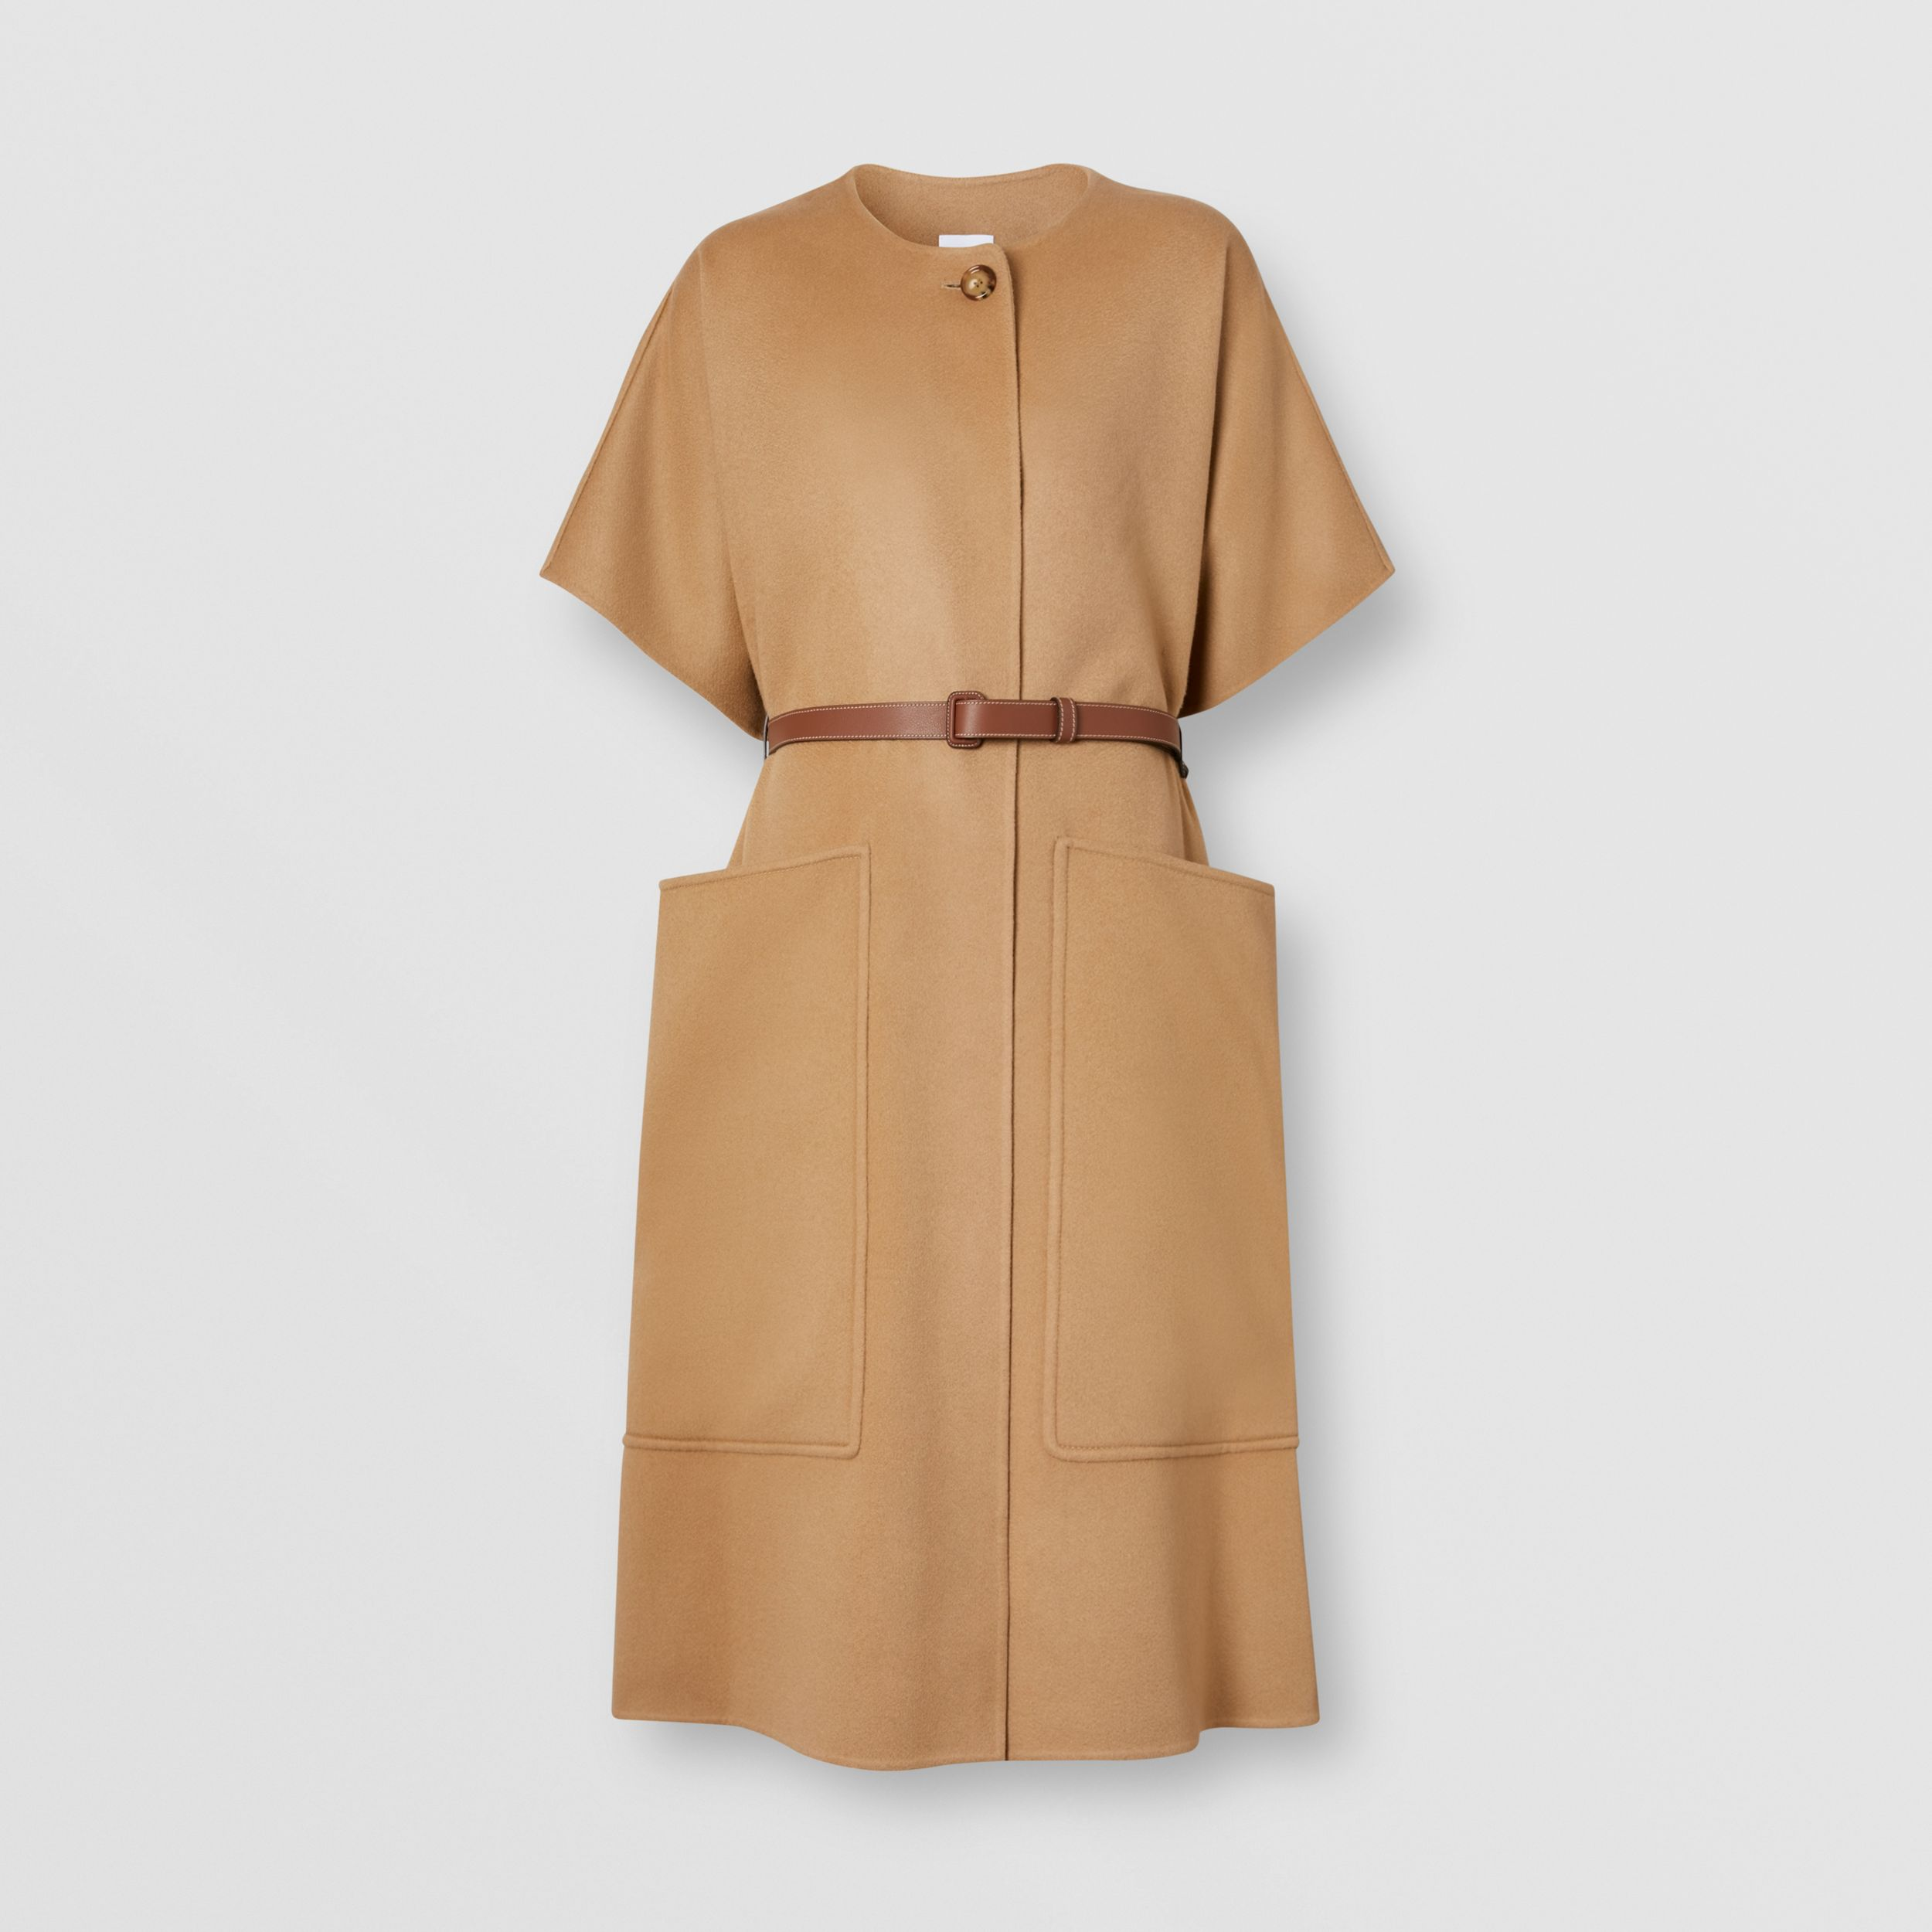 Short-sleeve Double-faced Cashmere Belted Cape – Unisex in Camel - Women | Burberry Australia - 4